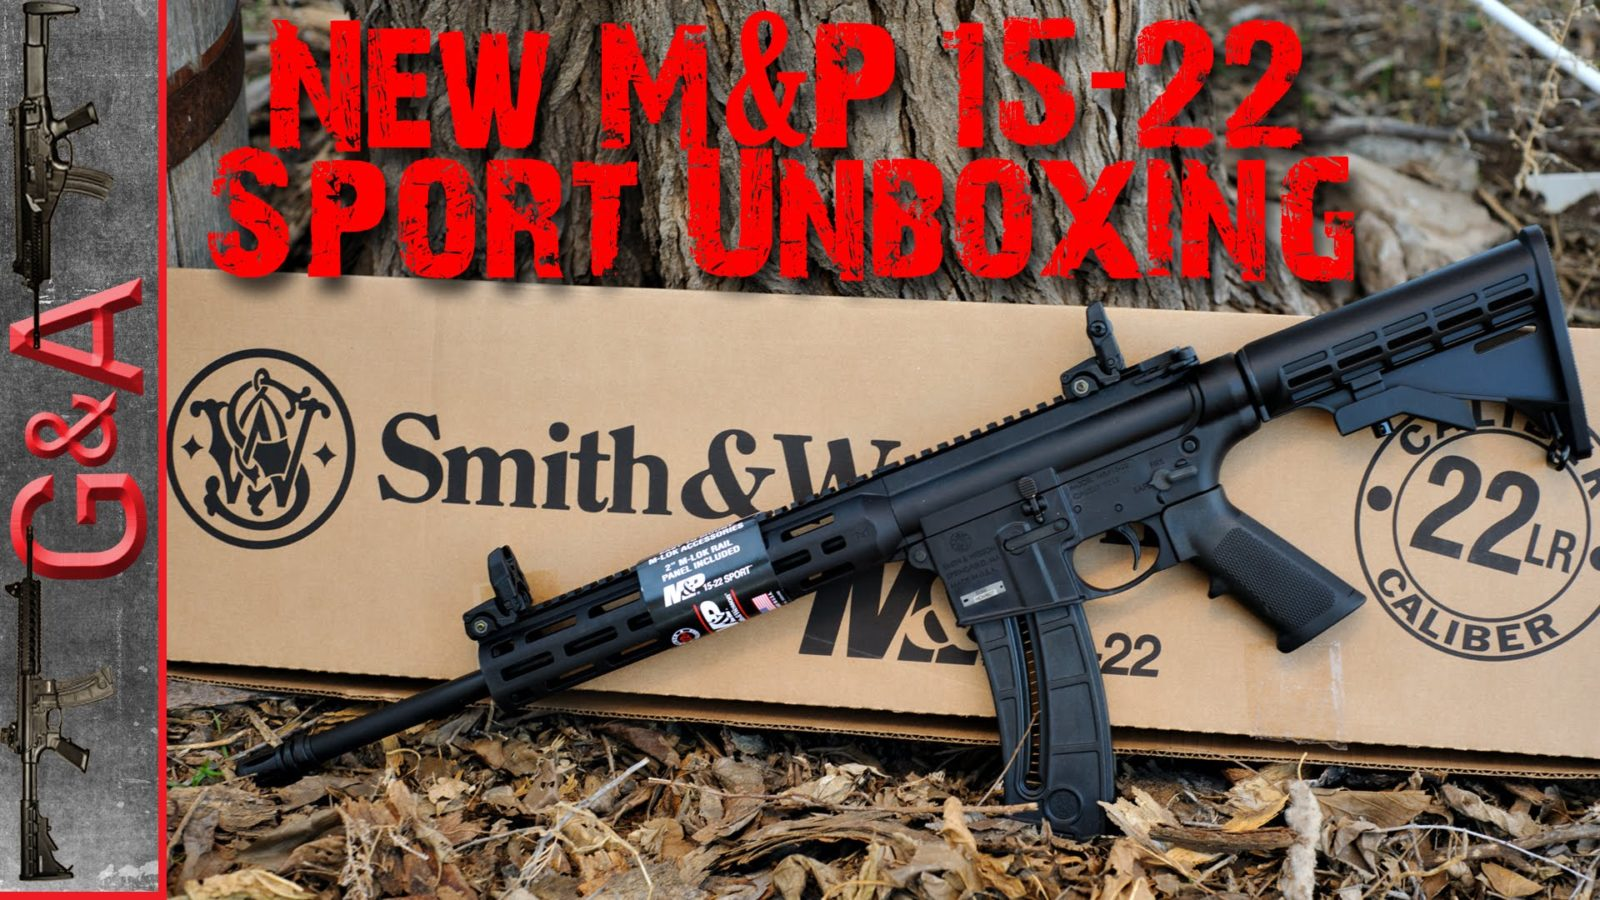 Smith & Wesson M&P15-22 Sport Unboxing